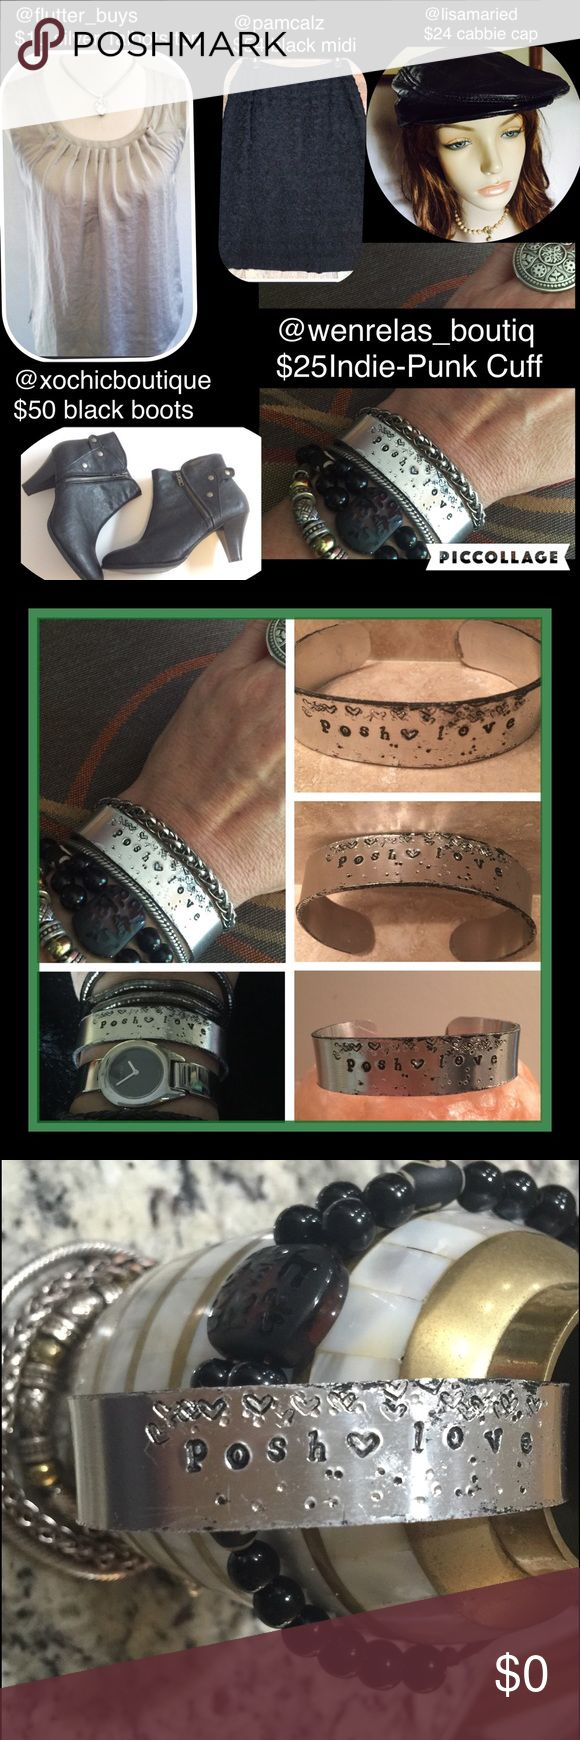 """Indie-Punk Vintaged Cuff/Custom Handstamp Cuff This Exclusive design by @wenrella  All my creations are 100% designed and handmade with POSH❤LOVE and care by Wenrella  When I get stopped by women that want to touch this beautiful & elegant bracelet always ask """"What does POSH❤️LOVE mean?"""" It's a perfect way to share your closet name & $5 code. Vintage Jewelry Bracelets"""